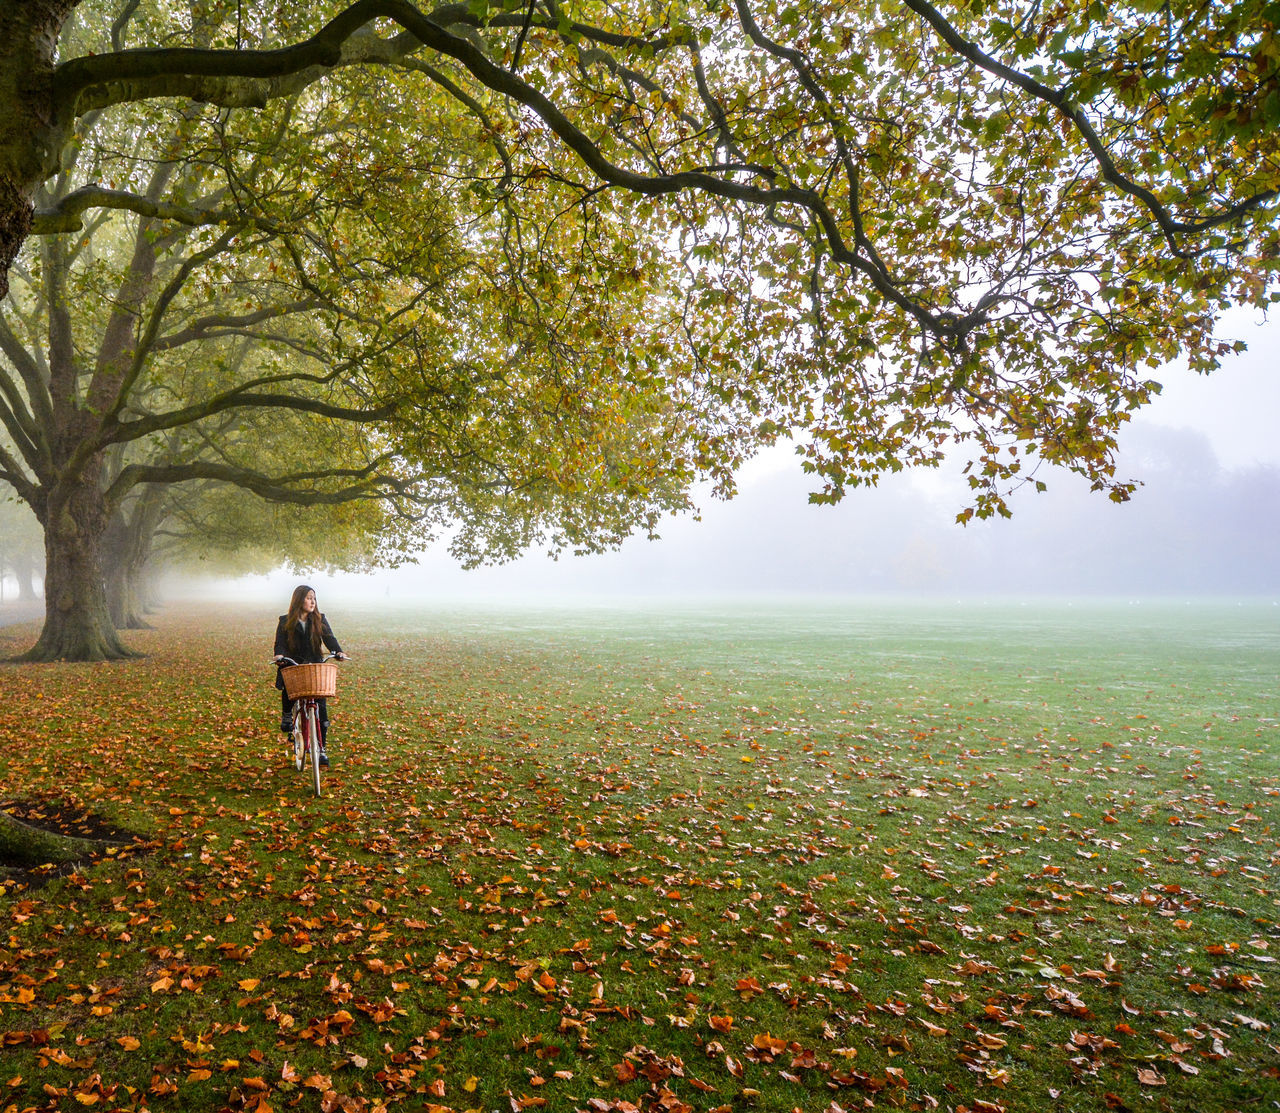 Foggy days turn Cambridge into a magical place... Beauty In Nature One Person Nature Tree Outdoors Cambridgeshire Cambridge Cycling Fall Leaves Landscape Autumn Bike Ride Autumn Leaves Foggy Morning Foggy Tree Fall Colors Transportation Foggy Landscape Autumn Colors Foggy Day Autumn Collection Bike Life Bike Riding Jesus Gre En